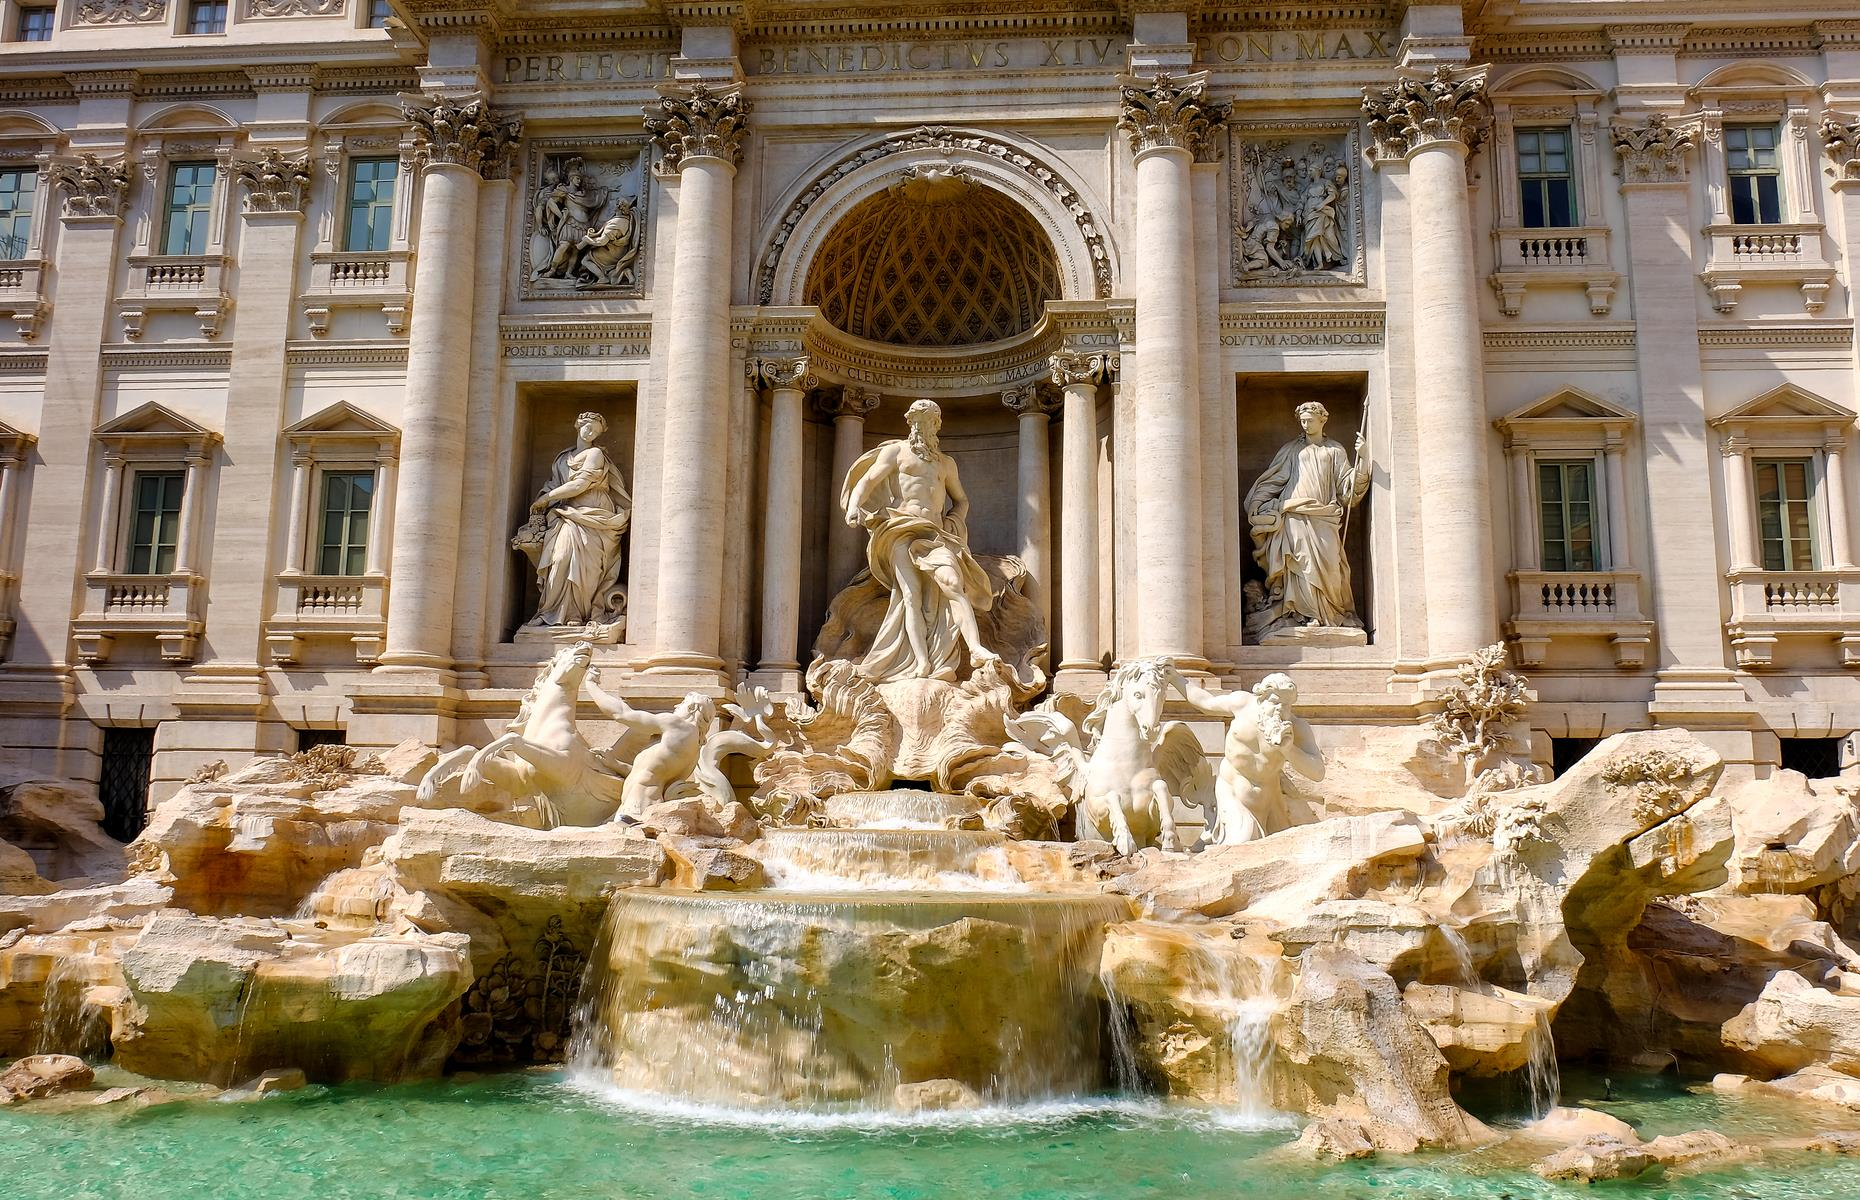 Slide 4 of 37: Known as one of the most beautiful fountains in Rome, the Trevi Fountain measures alofty 85 feet (26m)tall and 65 feet (20m) wide. Although thefountain was actuallycommissionedin 1629, construction didn't start until 1732 and it took around 30 years to finish. Millions of tourists usually flock to the fountain every year, and legend has it, throwing a coin into the water with your back turned will ensure you'll return to the city.